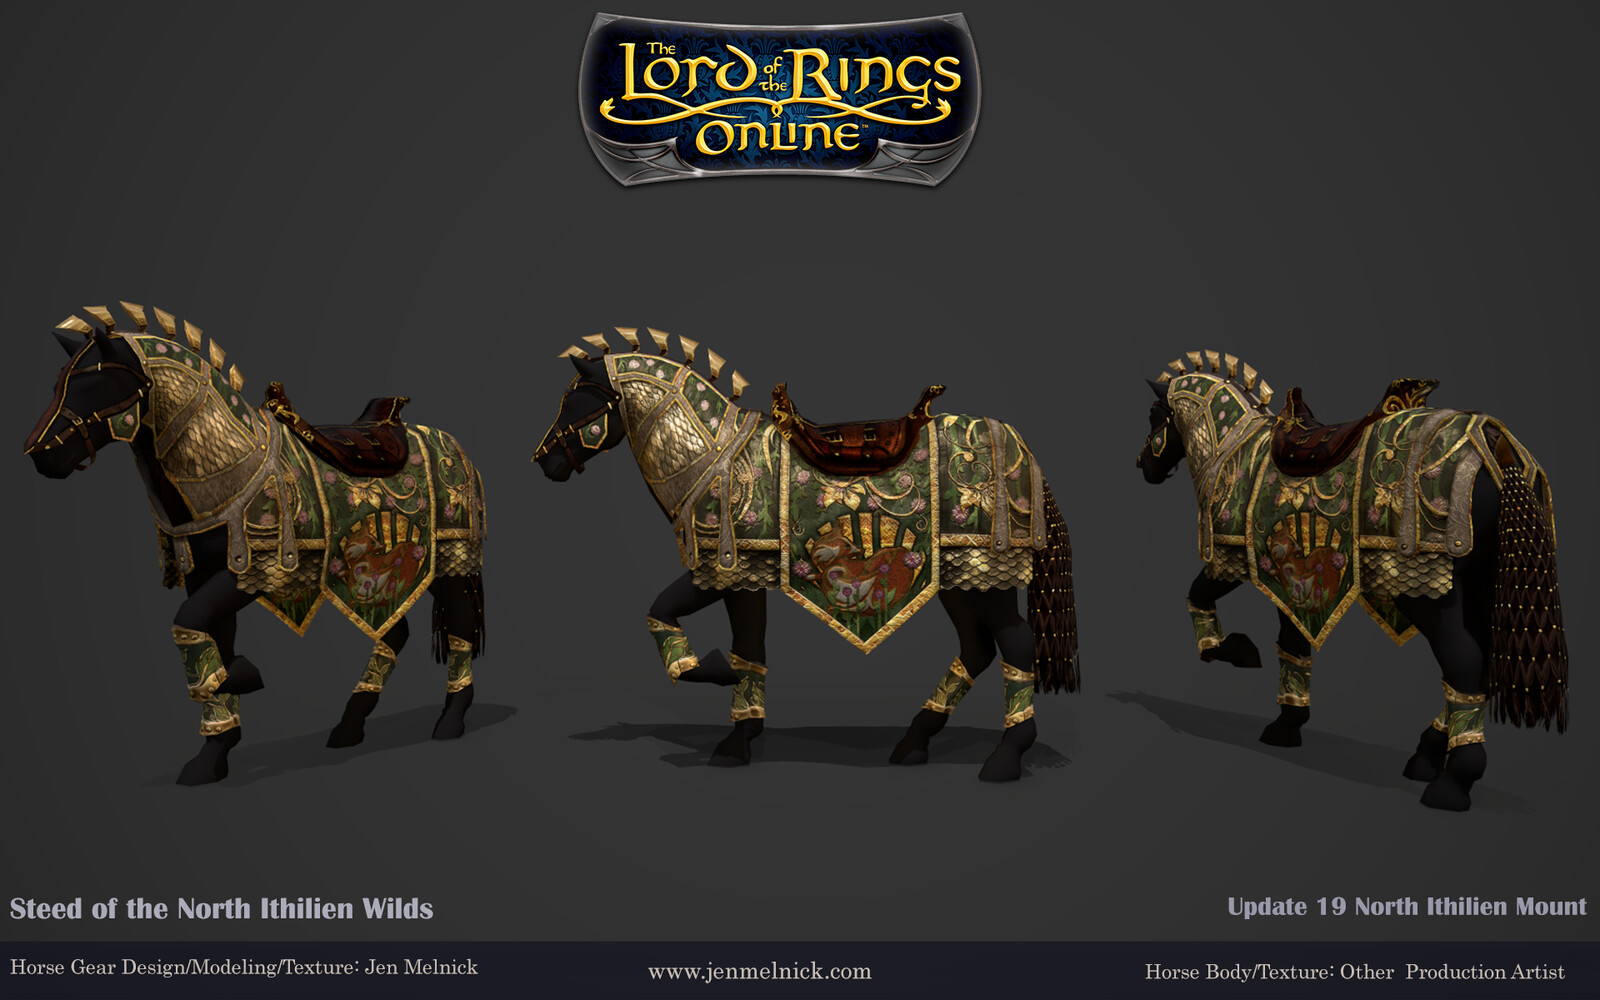 Update 19 North Ithilien Deed Mount Steed of the North Ithilien Wilds Marmoset Render